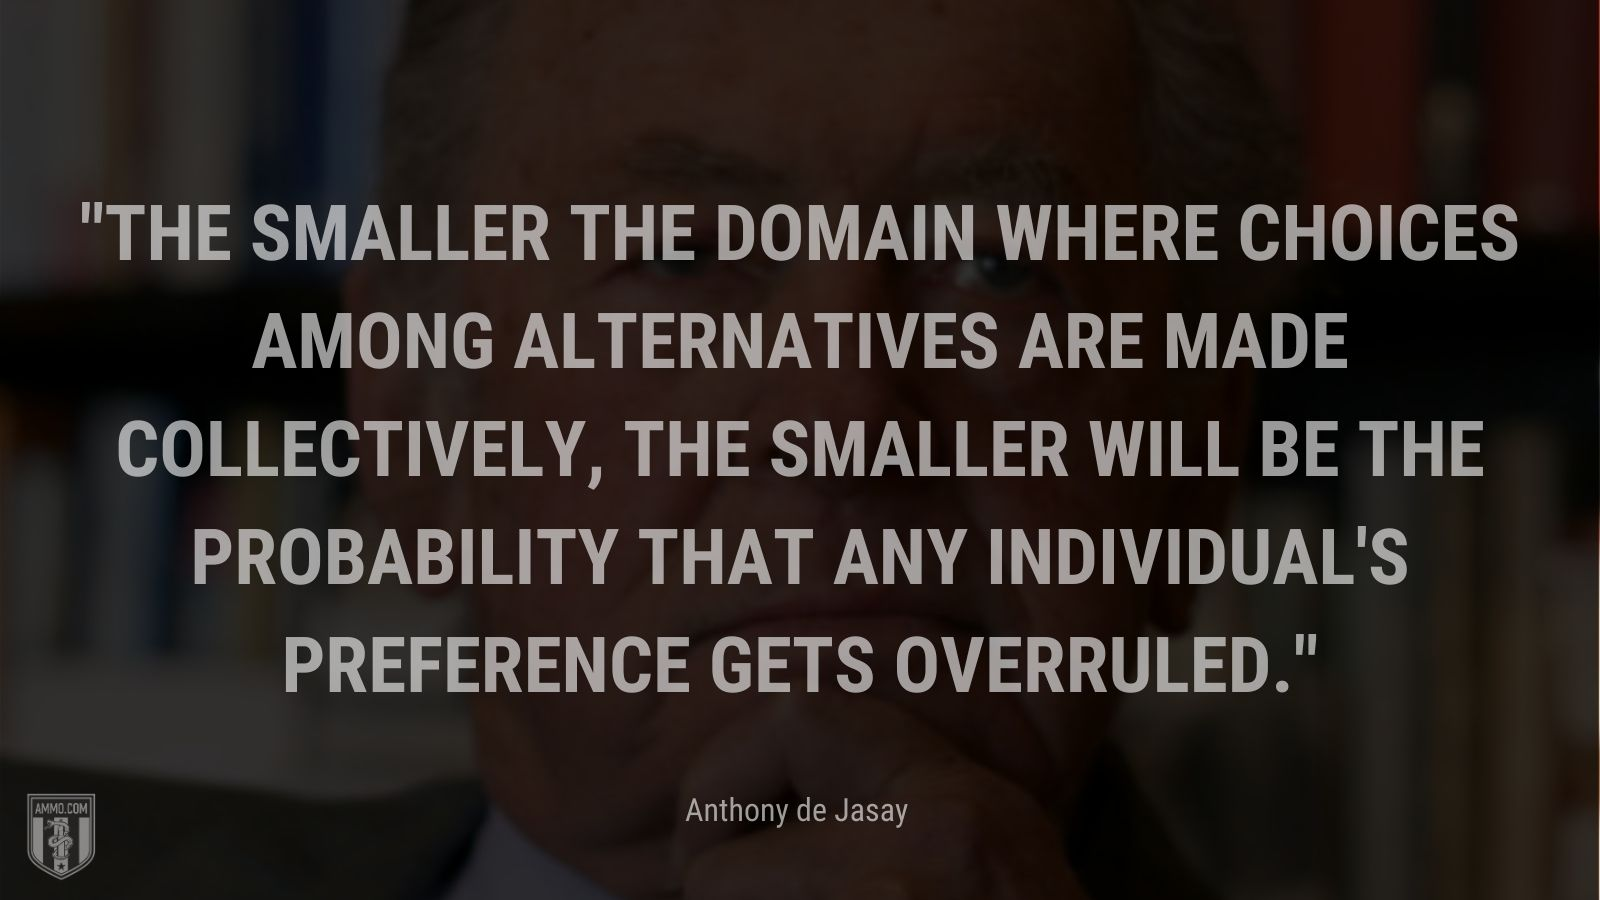 """""""The smaller the domain where choices among alternatives are made collectively, the smaller will be the probability that any individual's preference gets overruled. - Anthony de Jasay"""